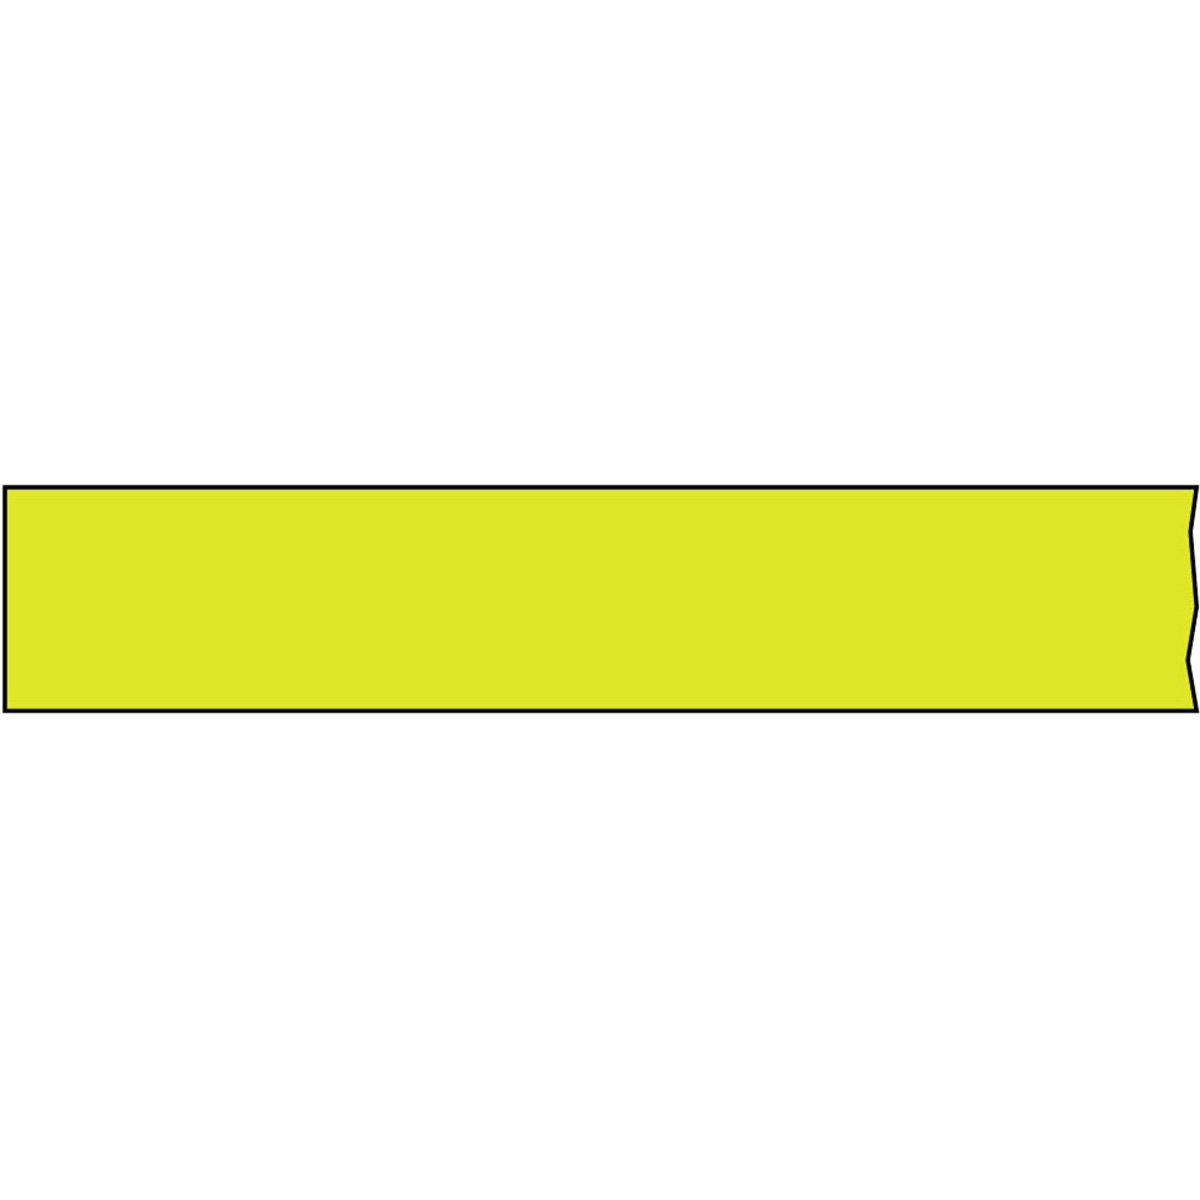 TIMETAPE T-3460-17 Tape, Removable, 3'' Core, 3/4'' x 2160'', Imprints Chartreuse (Pack of 1)